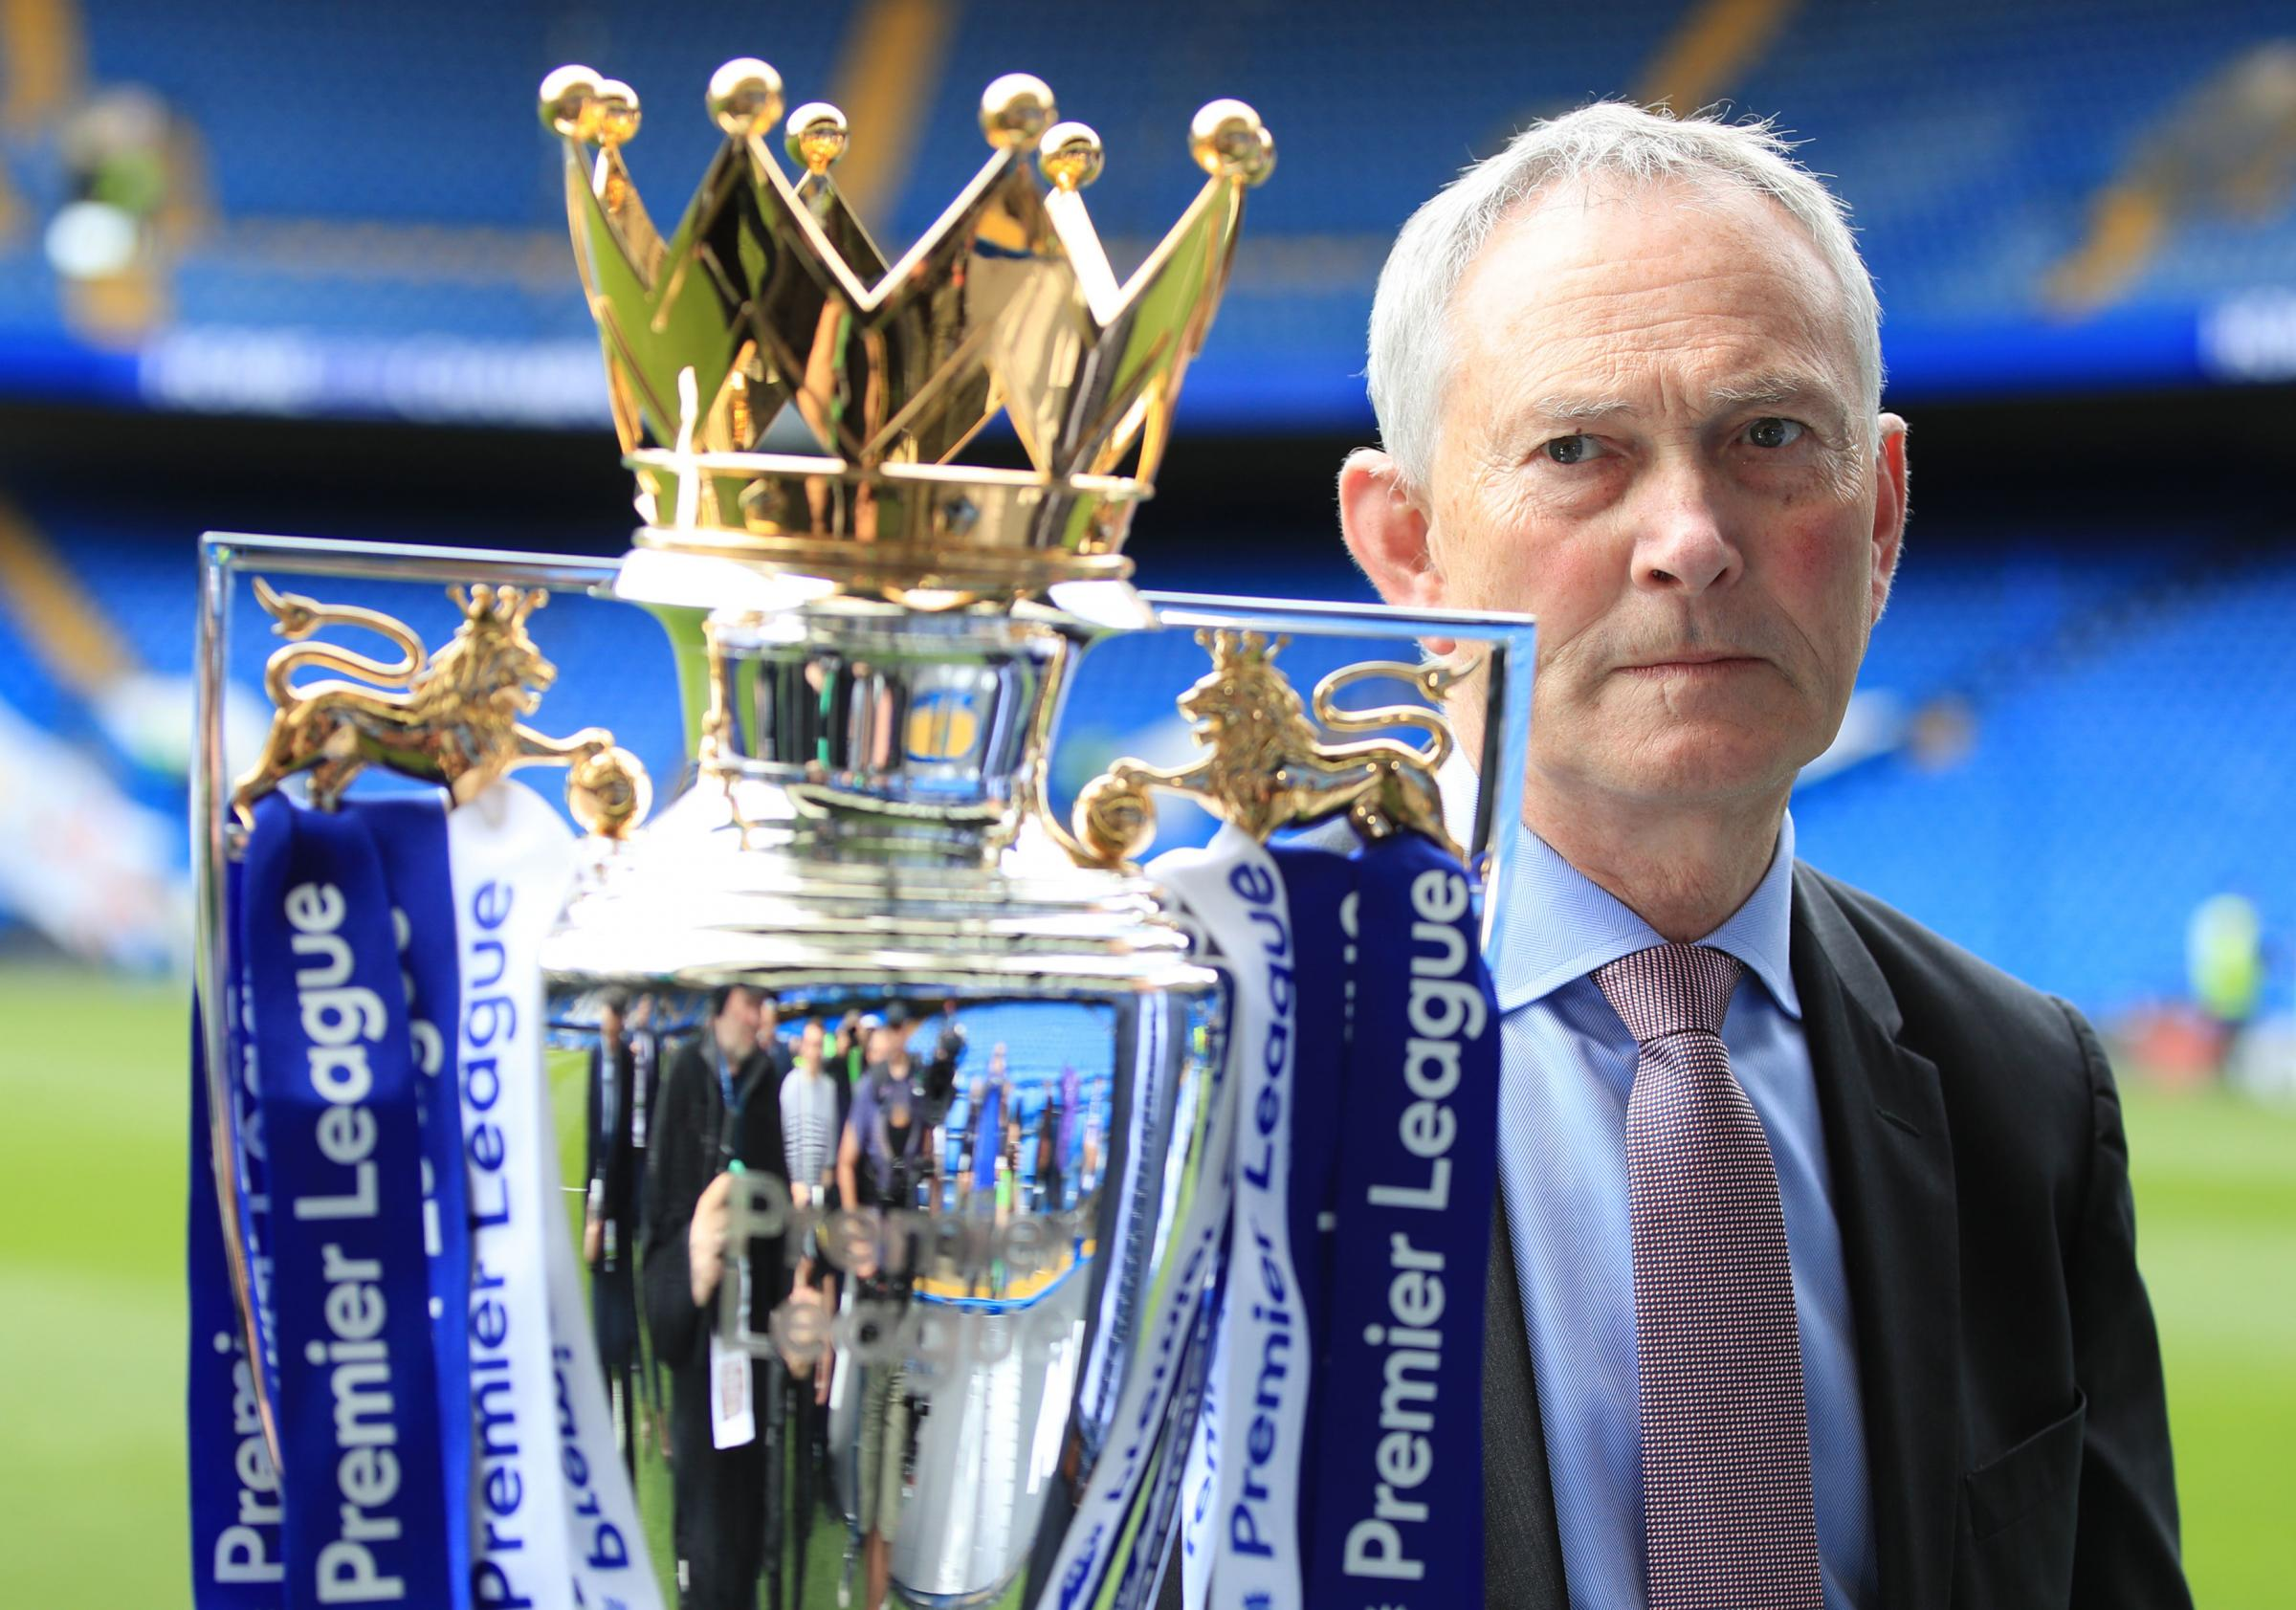 File photo dated 21-05-2017 of Richard Scudamore, Chief Executive of the Premier League. PRESS ASSOCIATION Photo. Issue date: Thursday November 15, 2018. Outgoing Premier League executive chairman Richard Scudamore will receive a £5million de